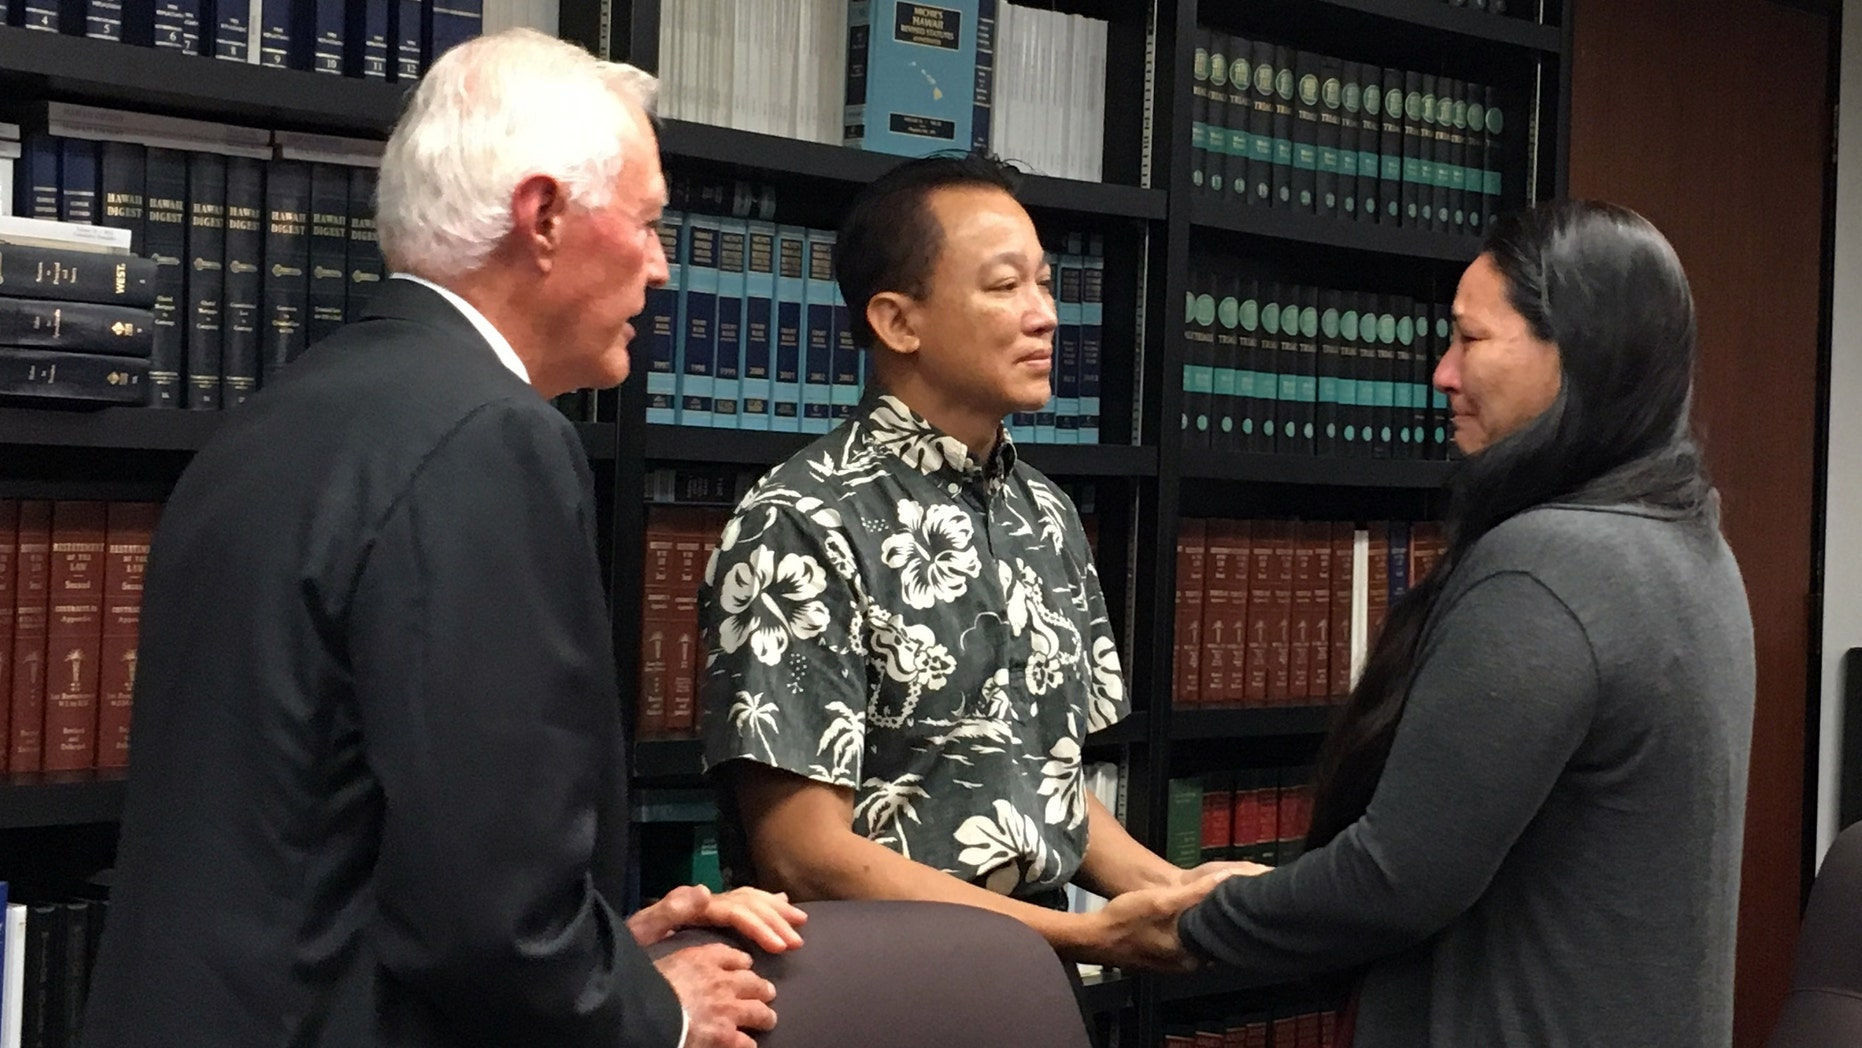 Keith Lee, center, a lawyer representing the Waianae Coast Health Center, holds hands with Rachel Marrero as her attorney Richard Fried looks on at a news conference in Honolulu, Wednesday, Sept. 14, 2016. The federal government is settling her malpractice lawsuit for $4.2 million after her husband went to the Waianae Coast Comprehensive Health Center with a sore throat and ended up dead. (AP Photo/Jennifer Sinco)